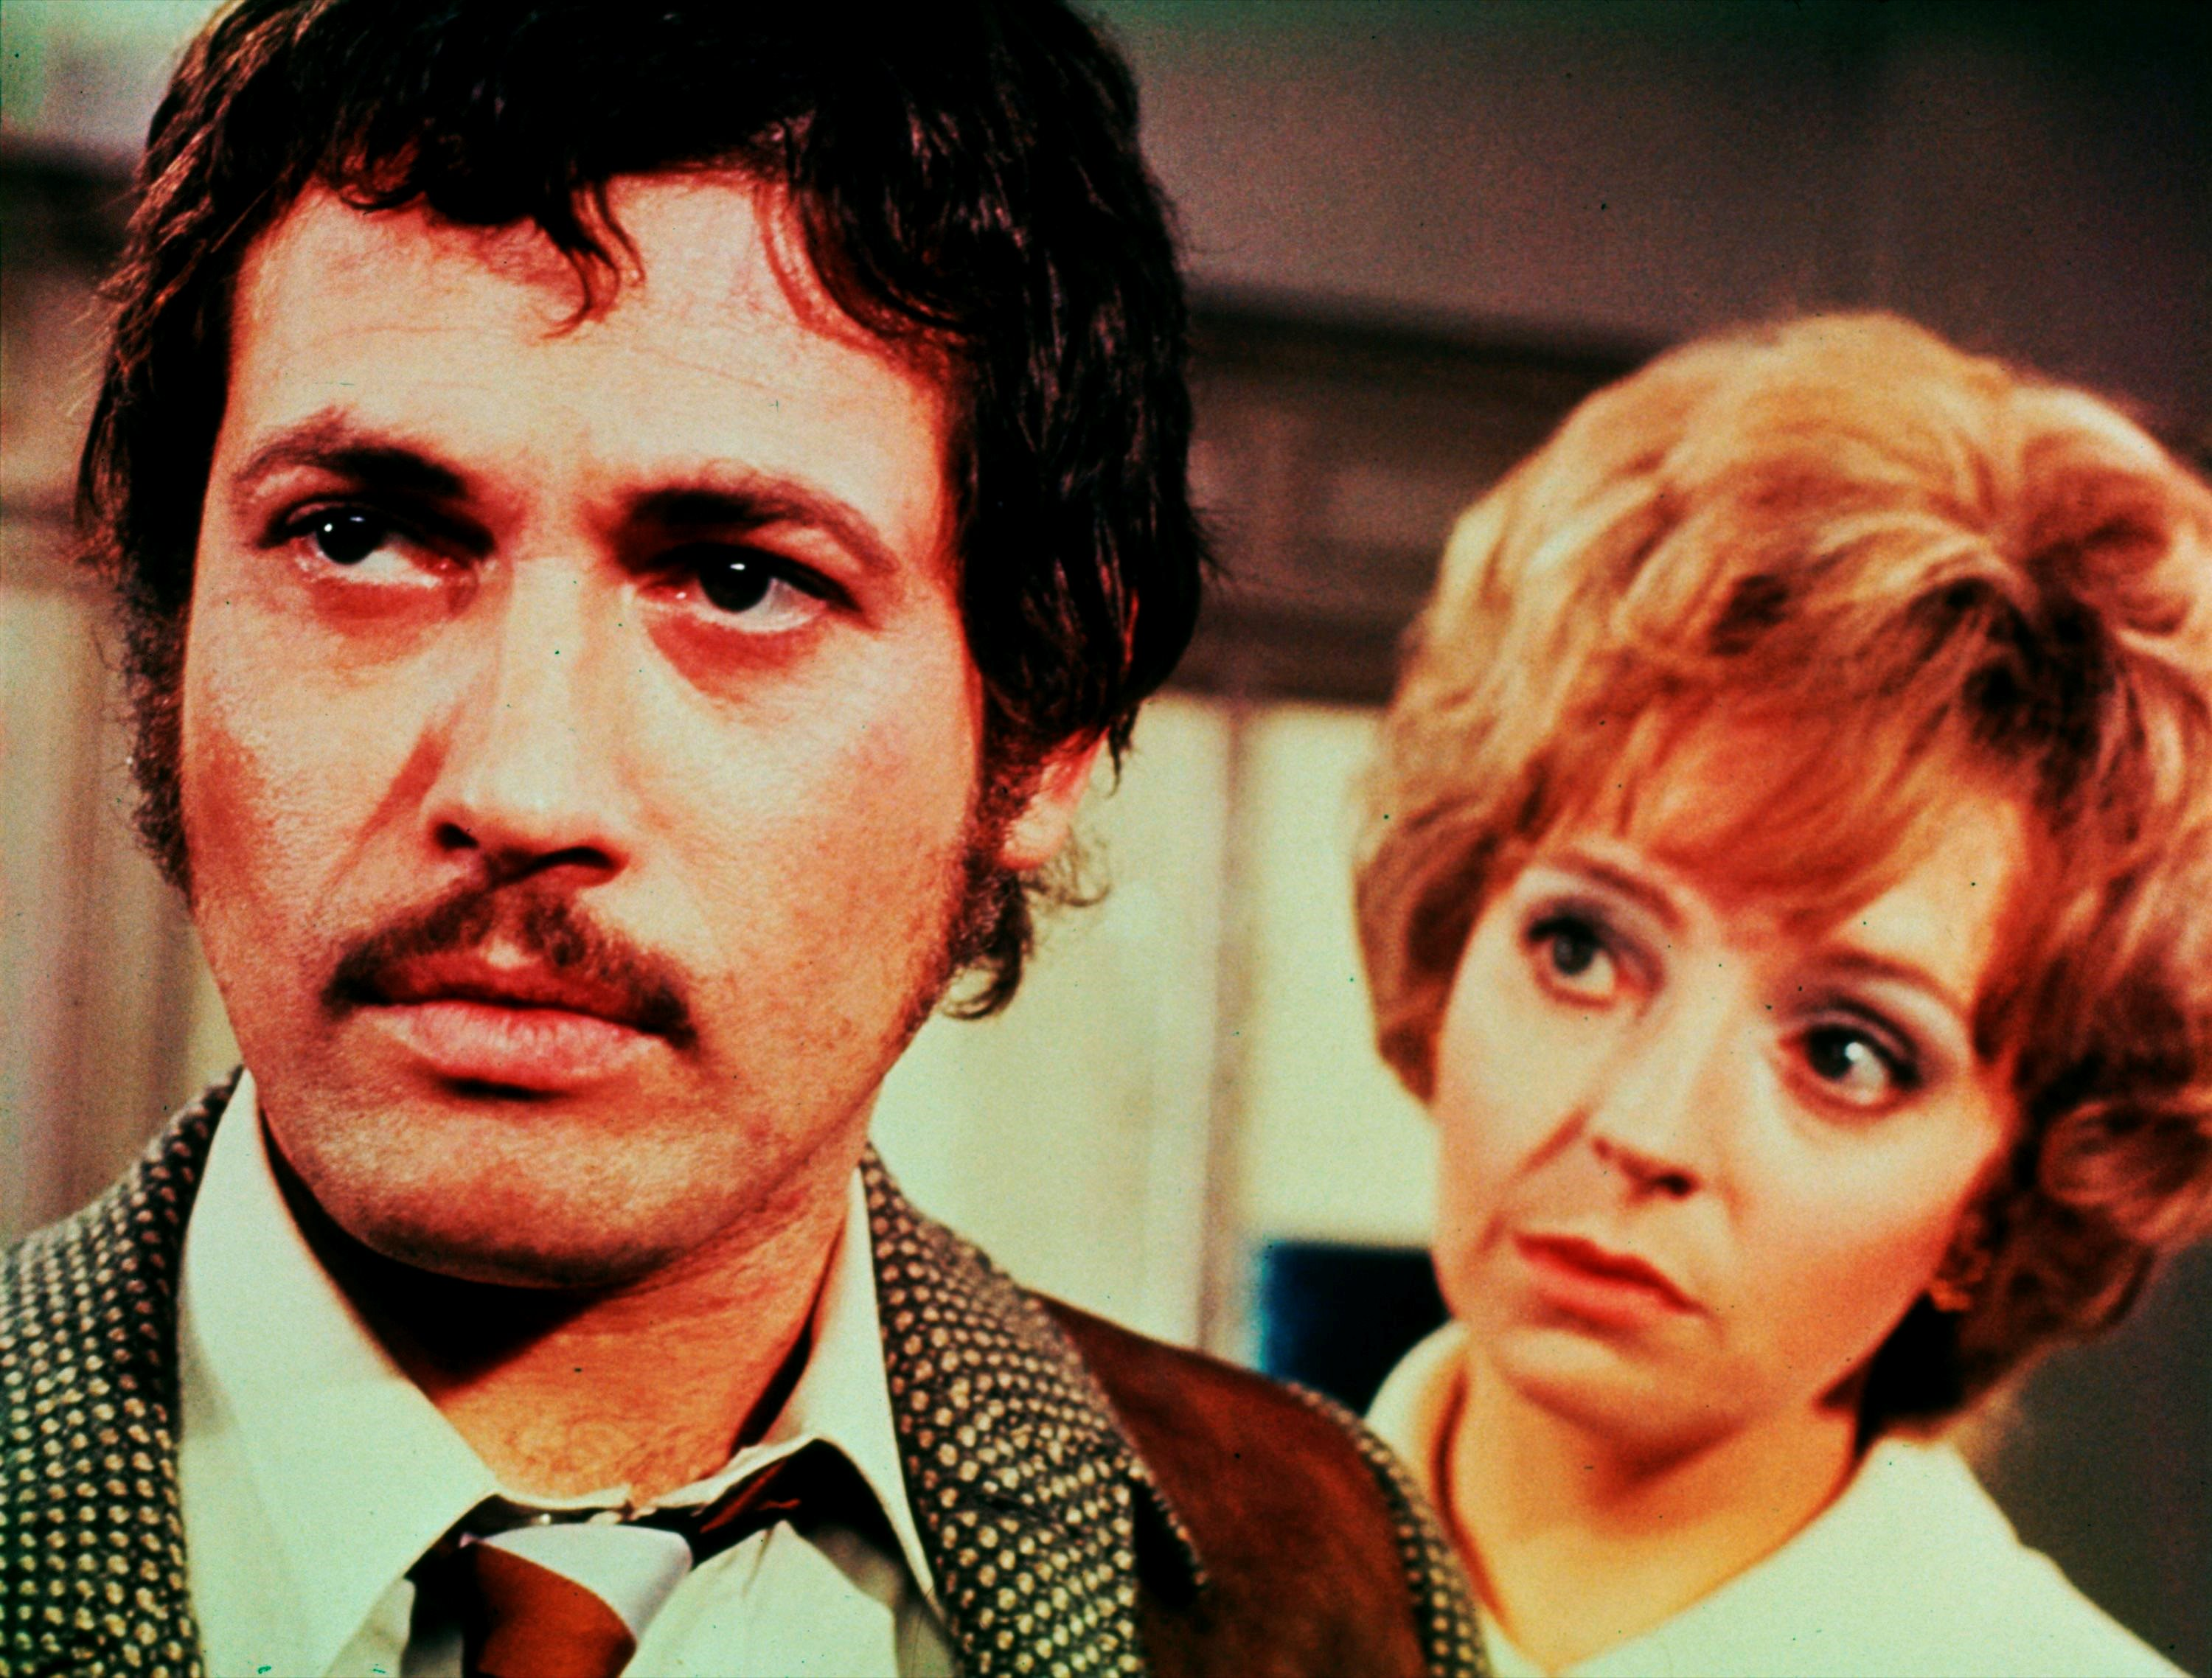 Jon Finch as the man wrongly blamed for a series of killings, along with girlfriend Anna Massey in Frenzy (1972)